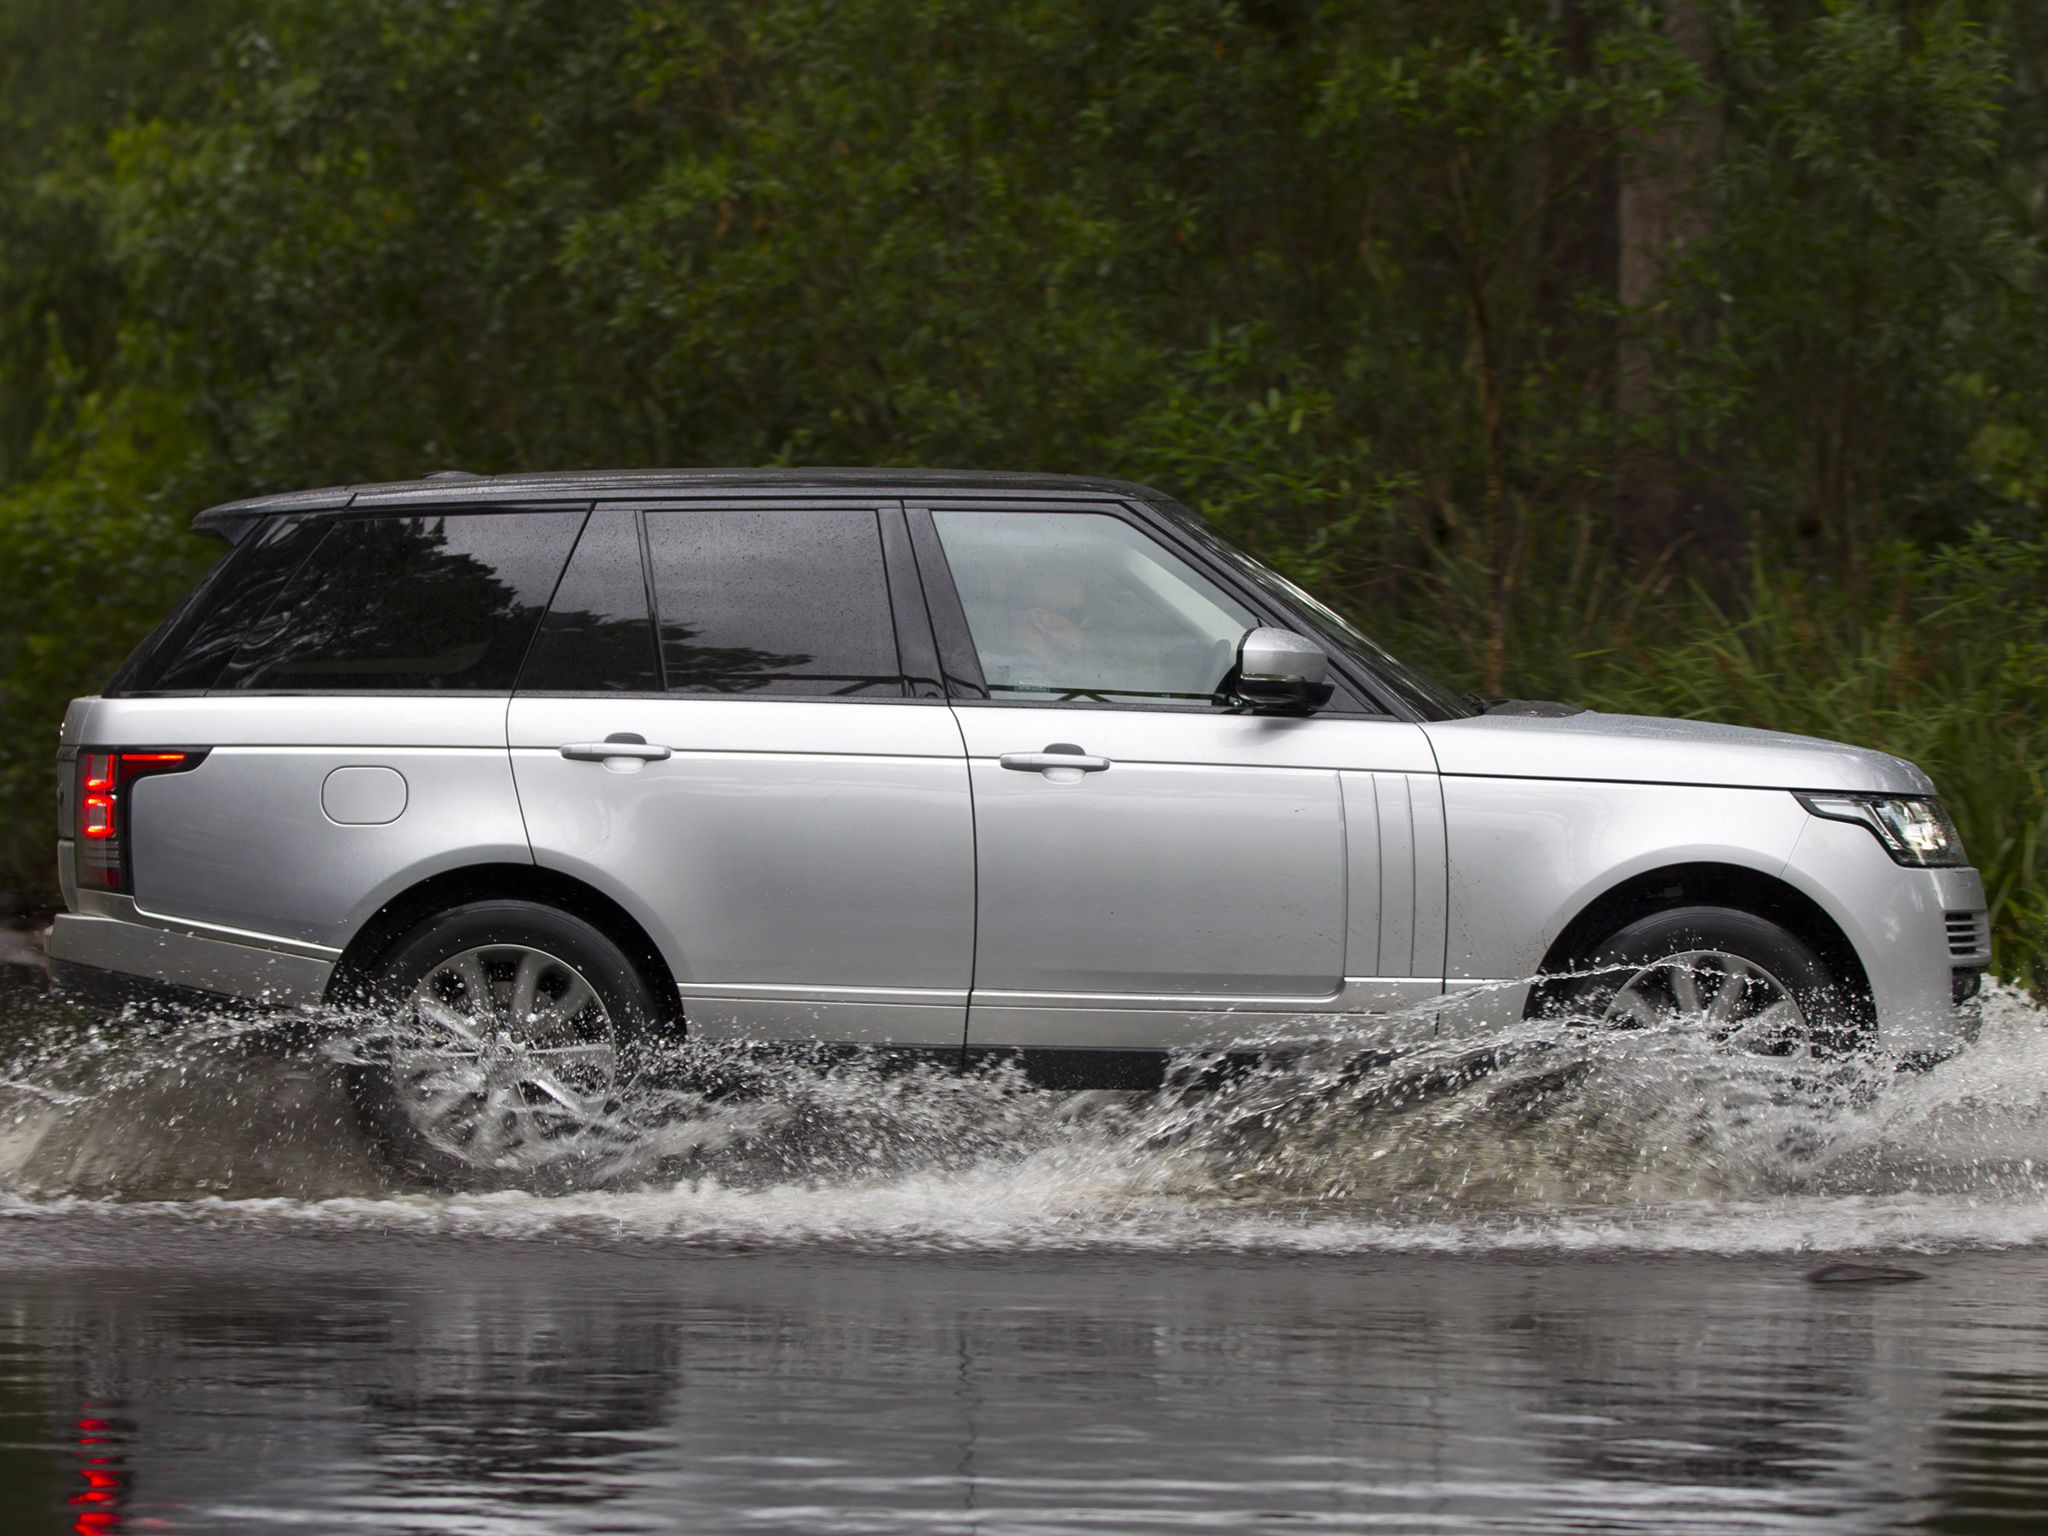 New Range Rover Vogue available for rental in Cote d Azur and